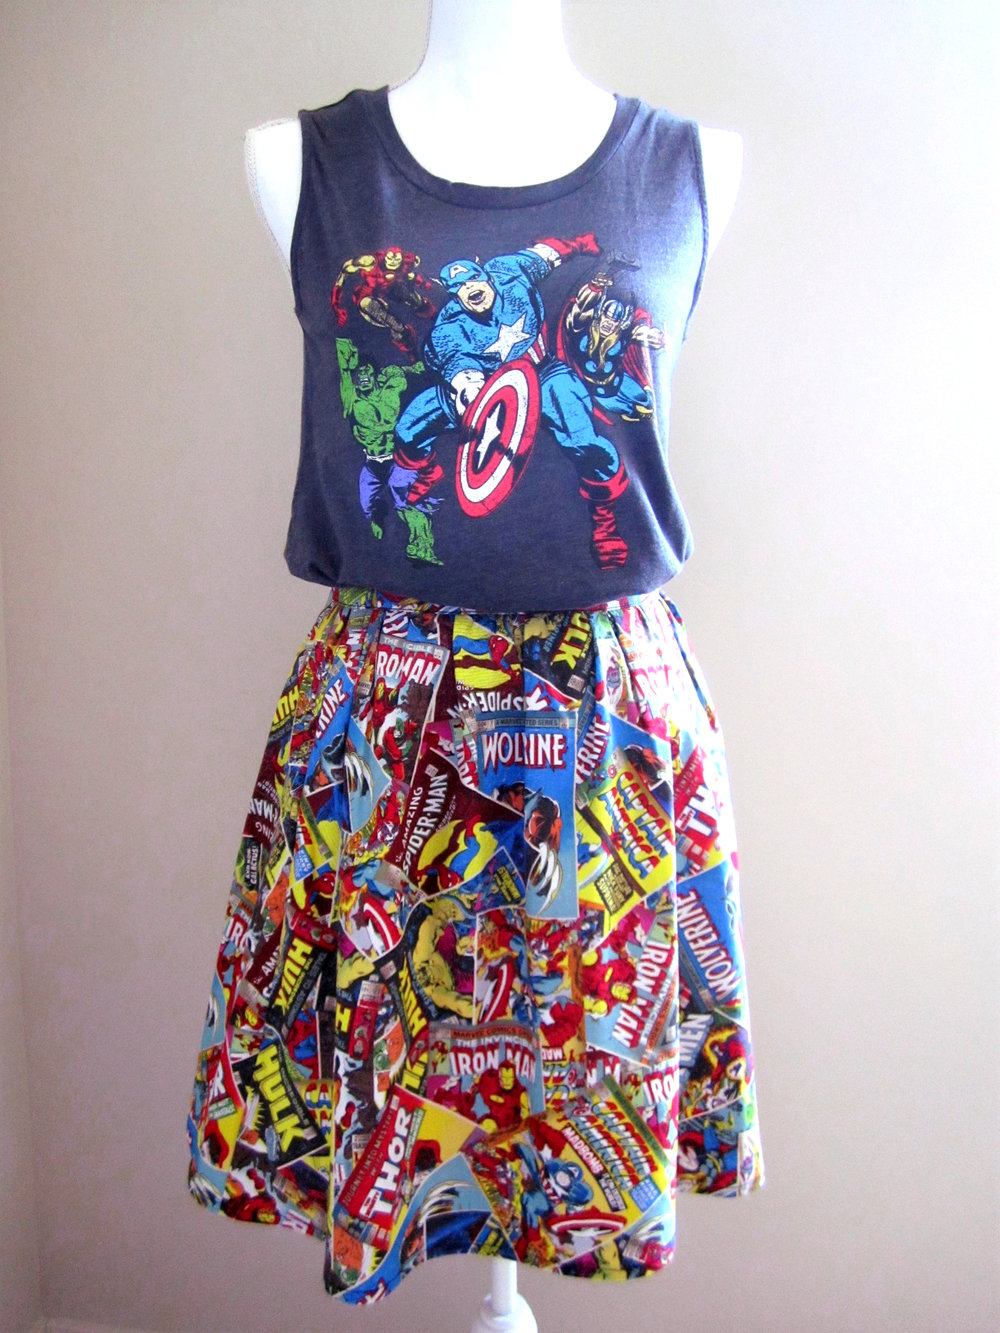 Superhero Comics Skirt